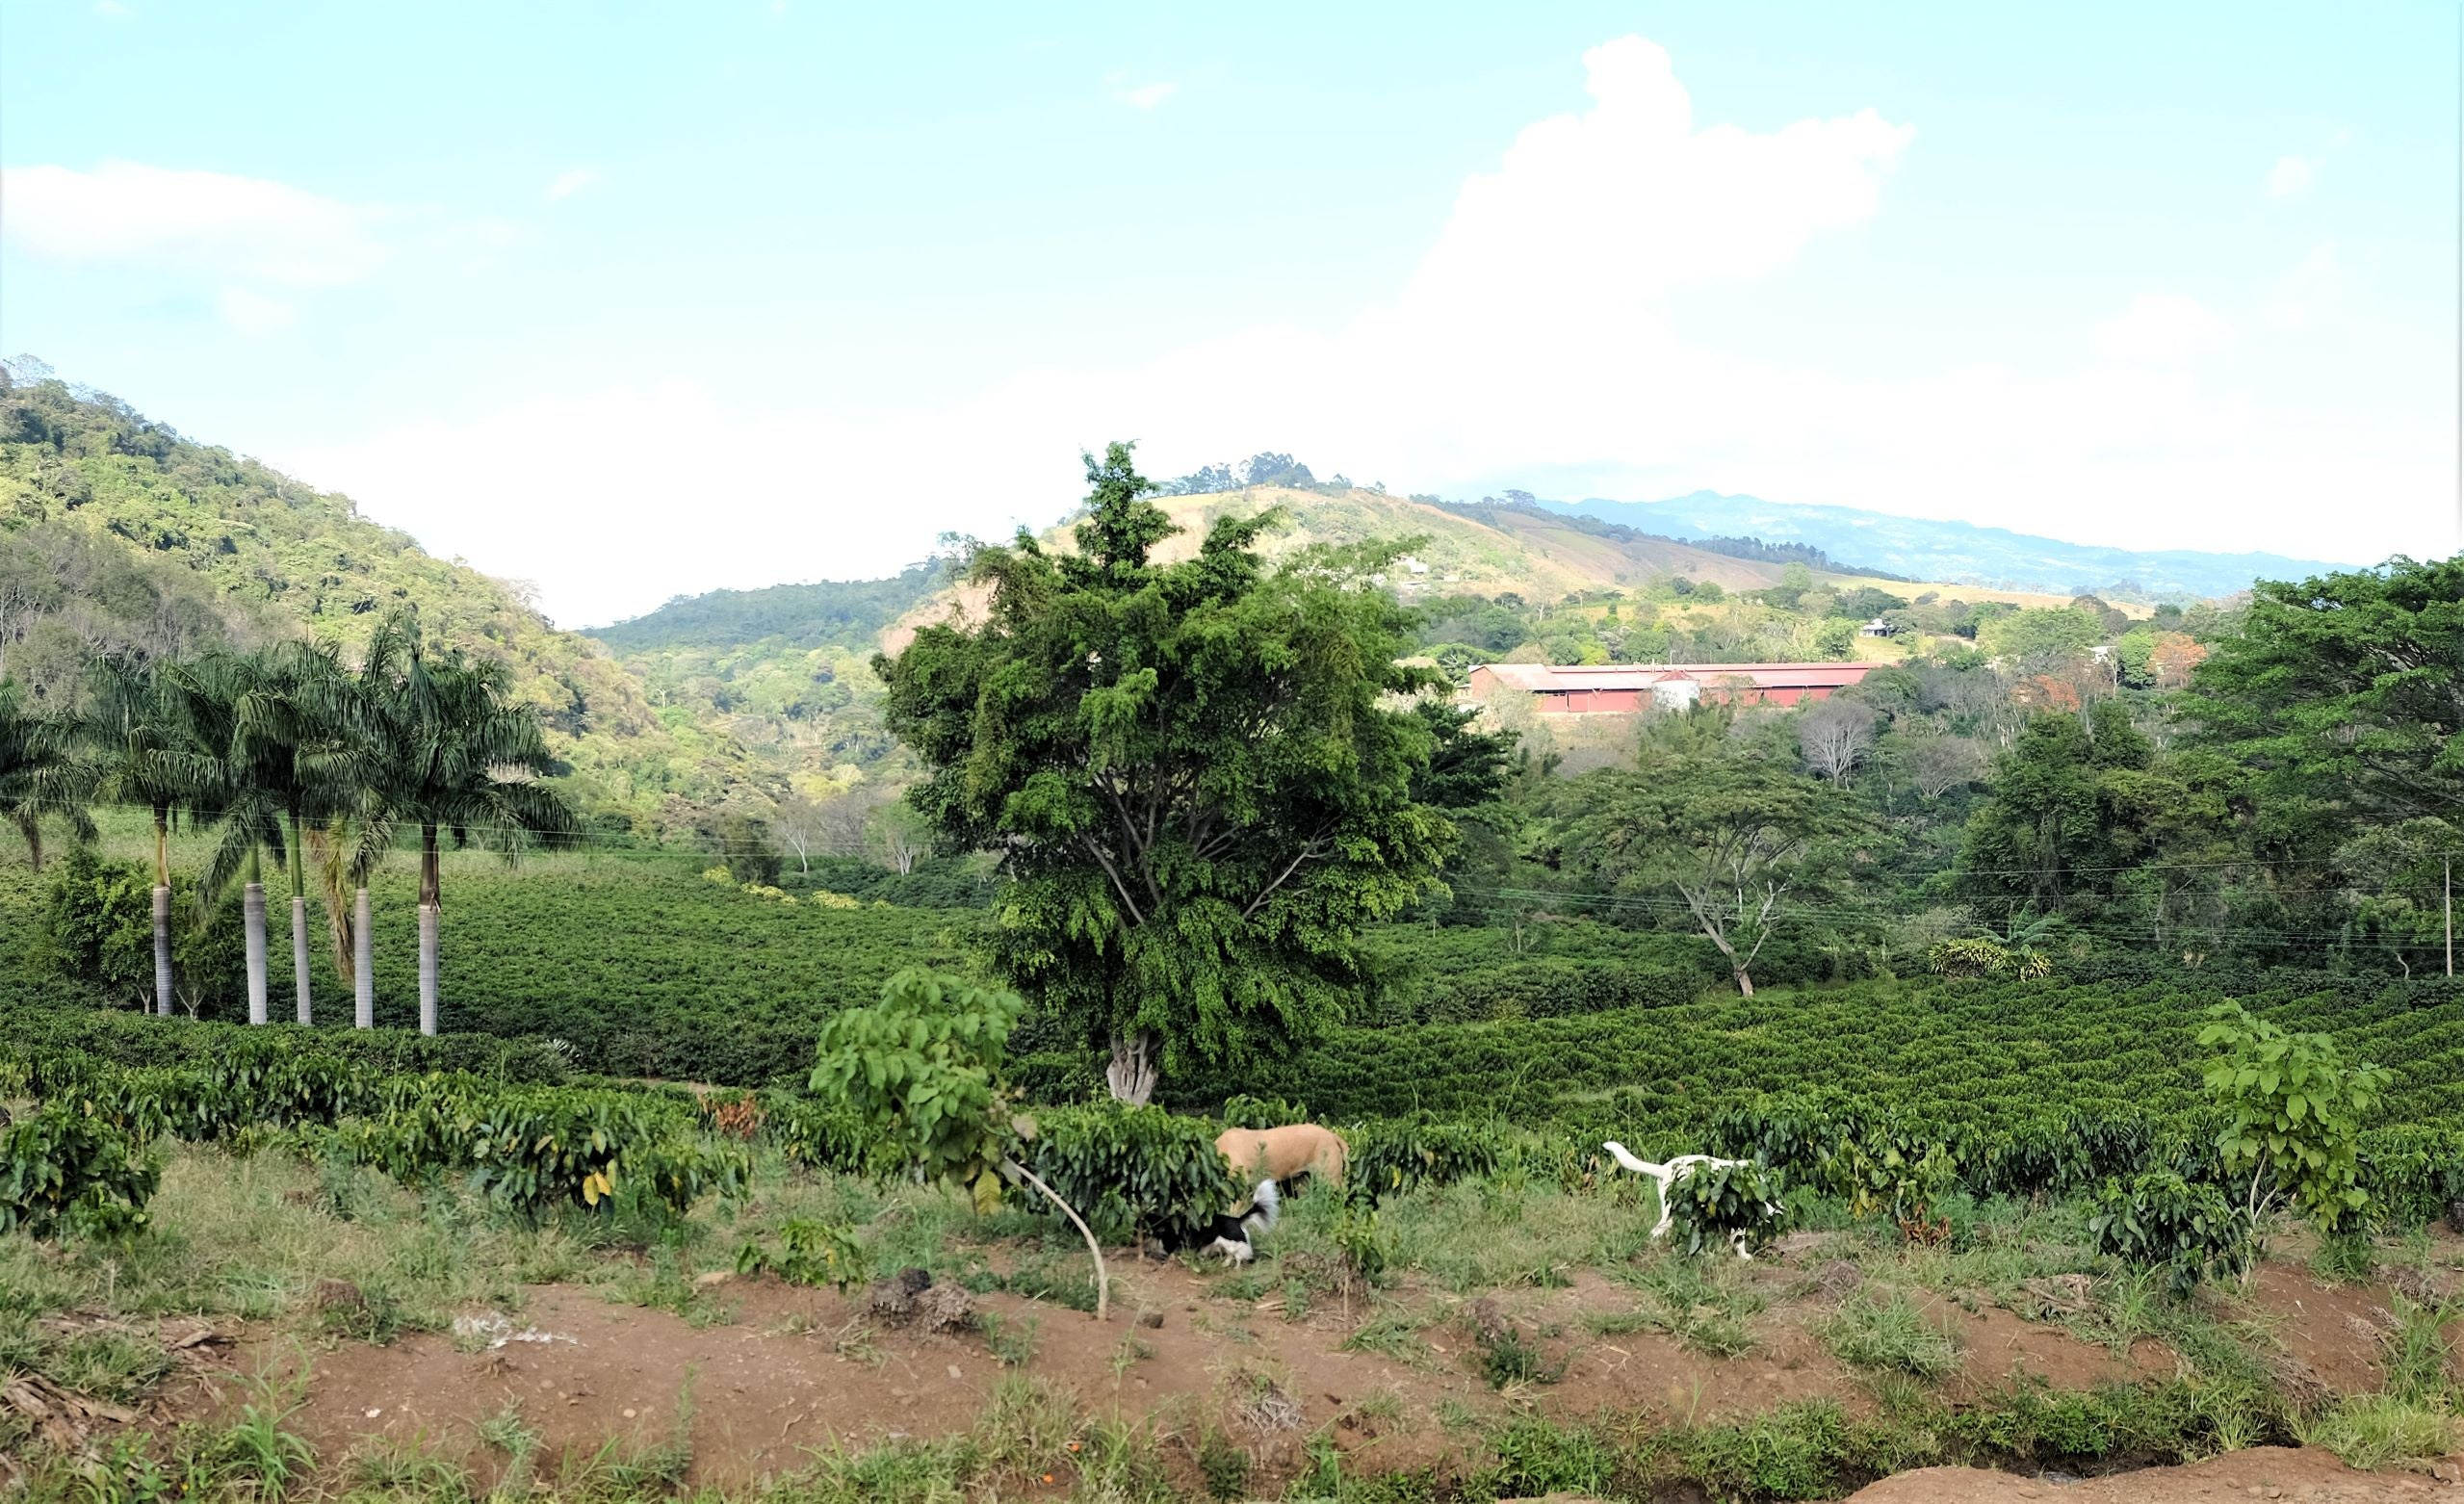 Hacienda Sonora coffee farm in Costa Rica